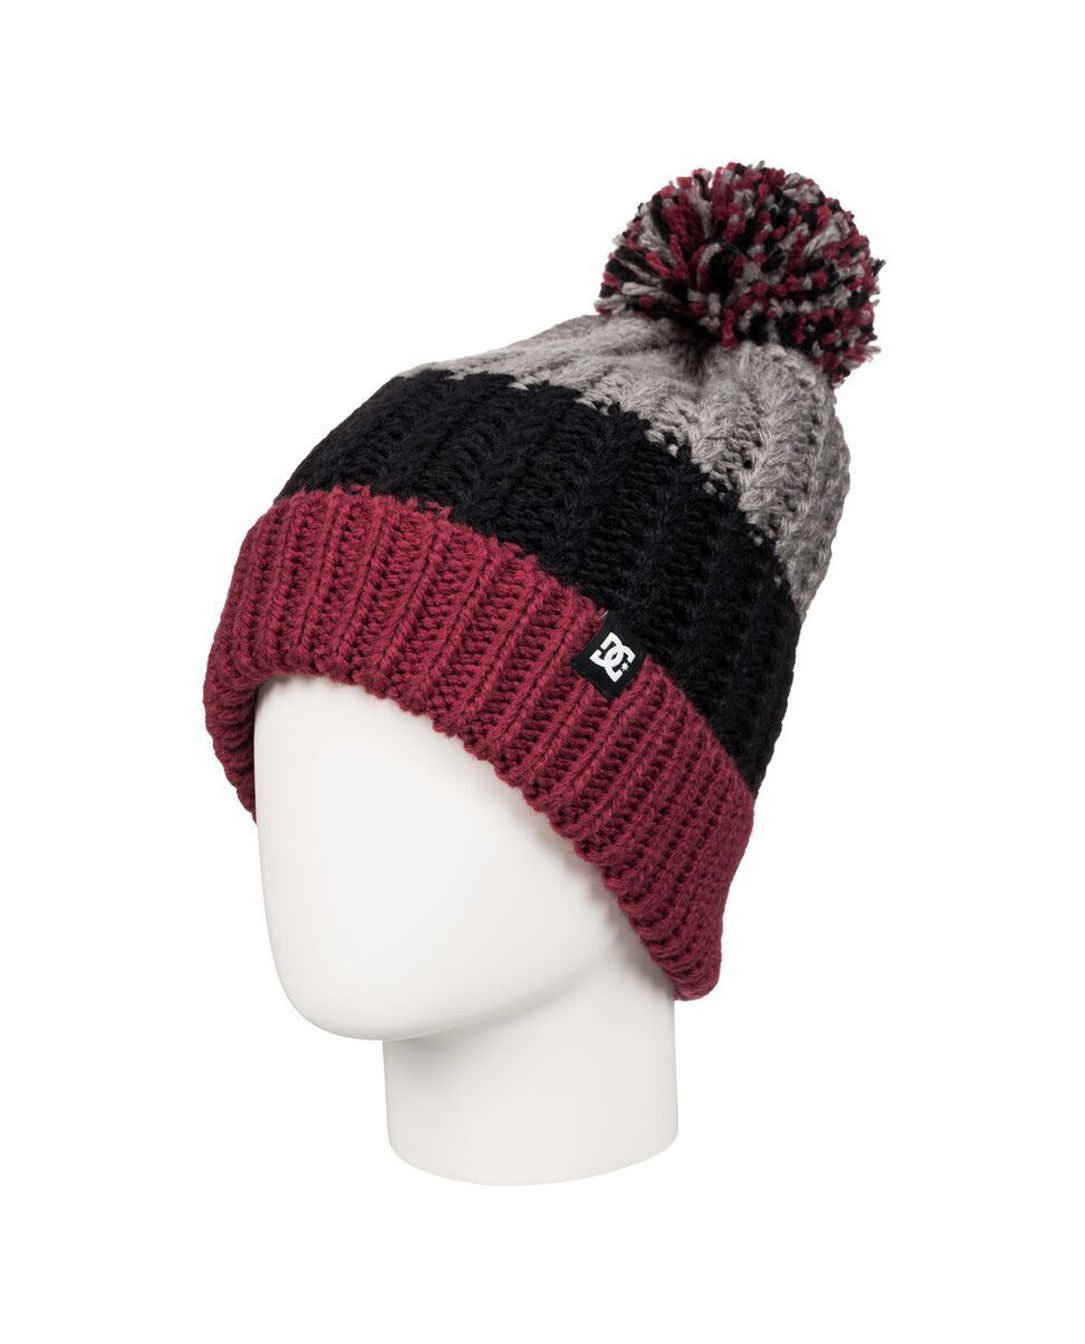 DC SHOES BEANIE WOMAN ELM BEV0 - LM BOARD STORE